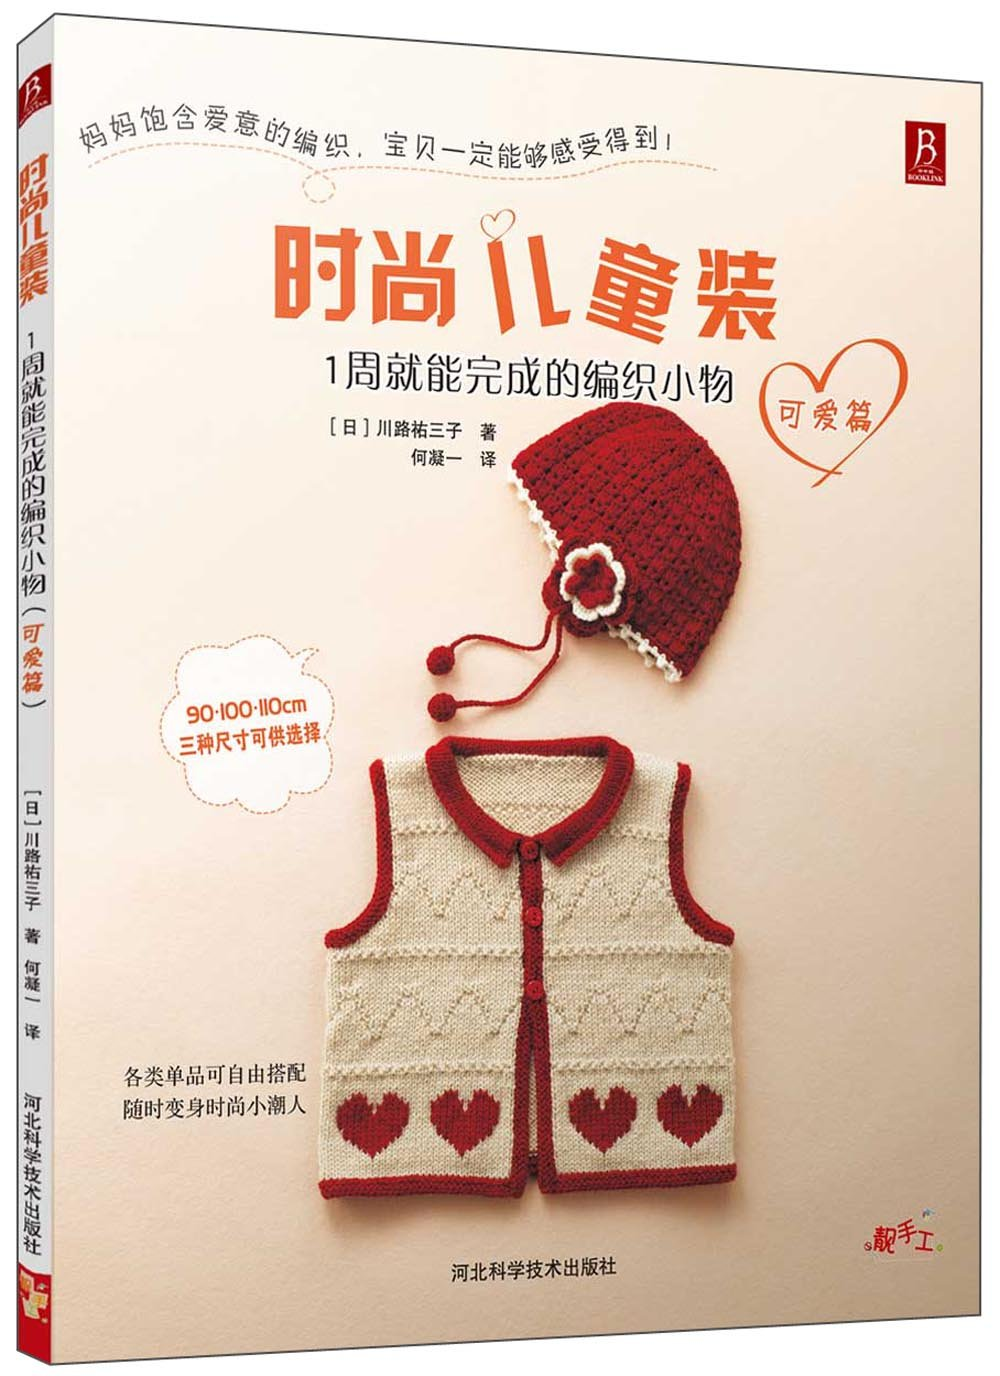 Fashion Children's Clothes A Week's Worth Of Knitted Fabrics For Sweater Hat Glove Scarf Vest / Chinese Handmade Craft Book